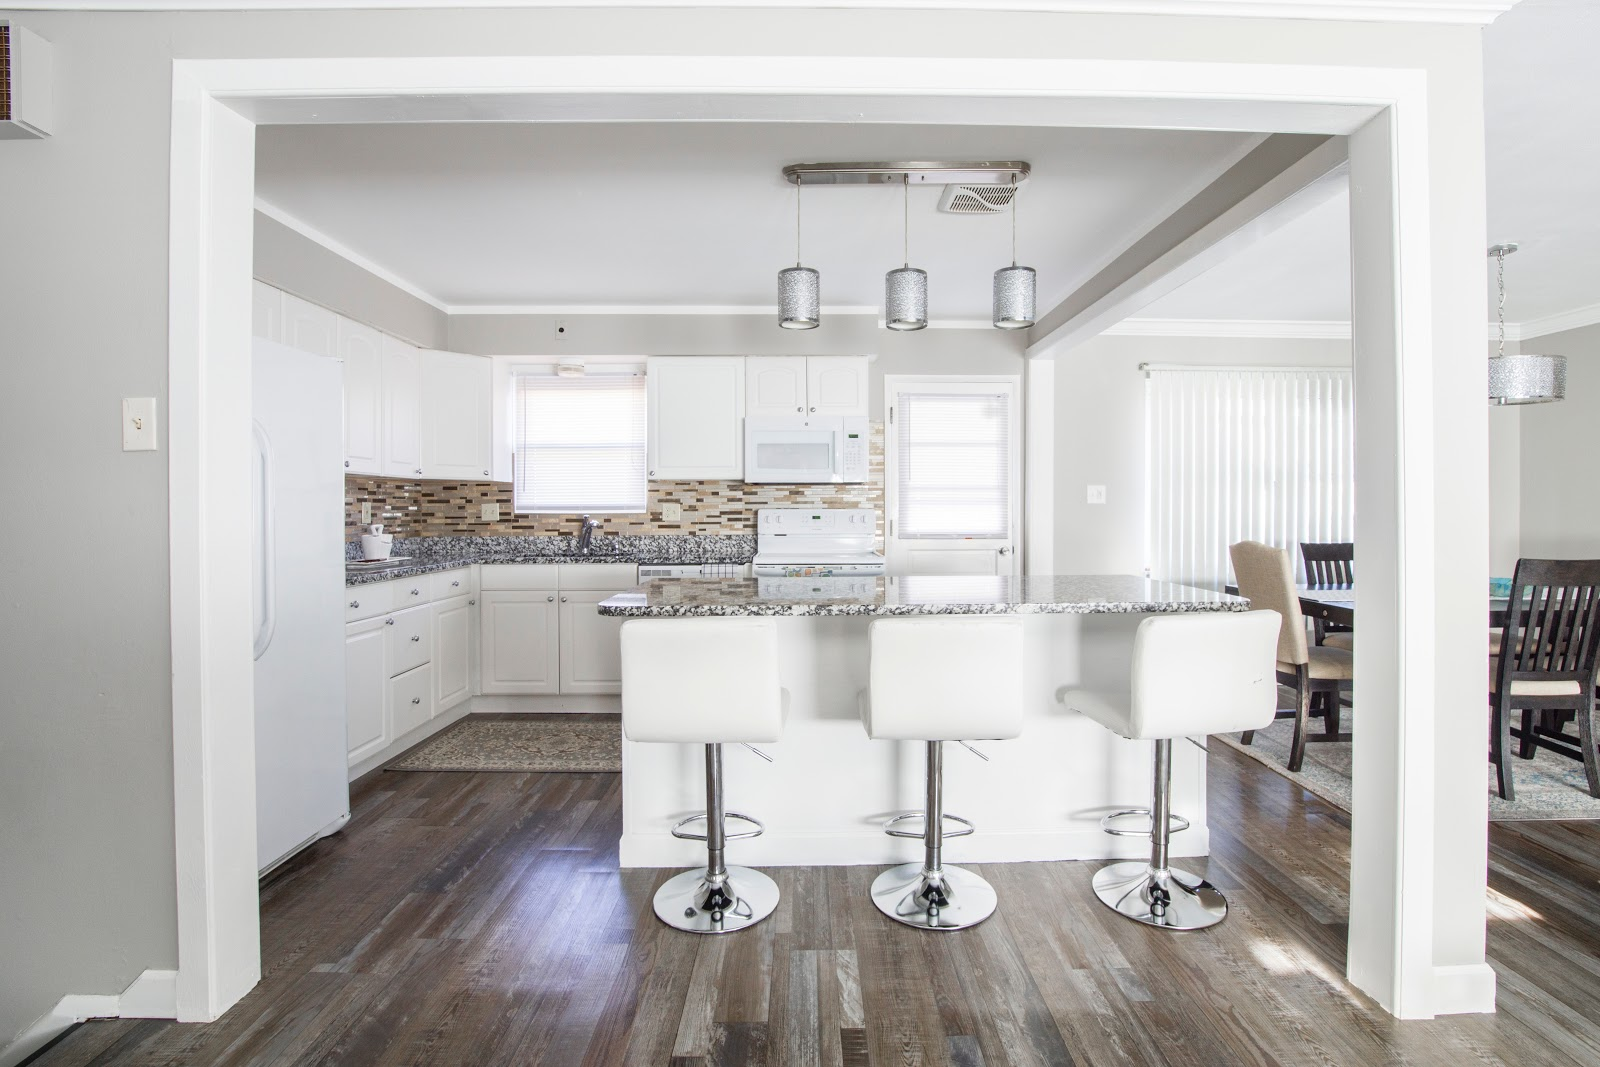 kitchen and open plan dining area create the perfect kitchen